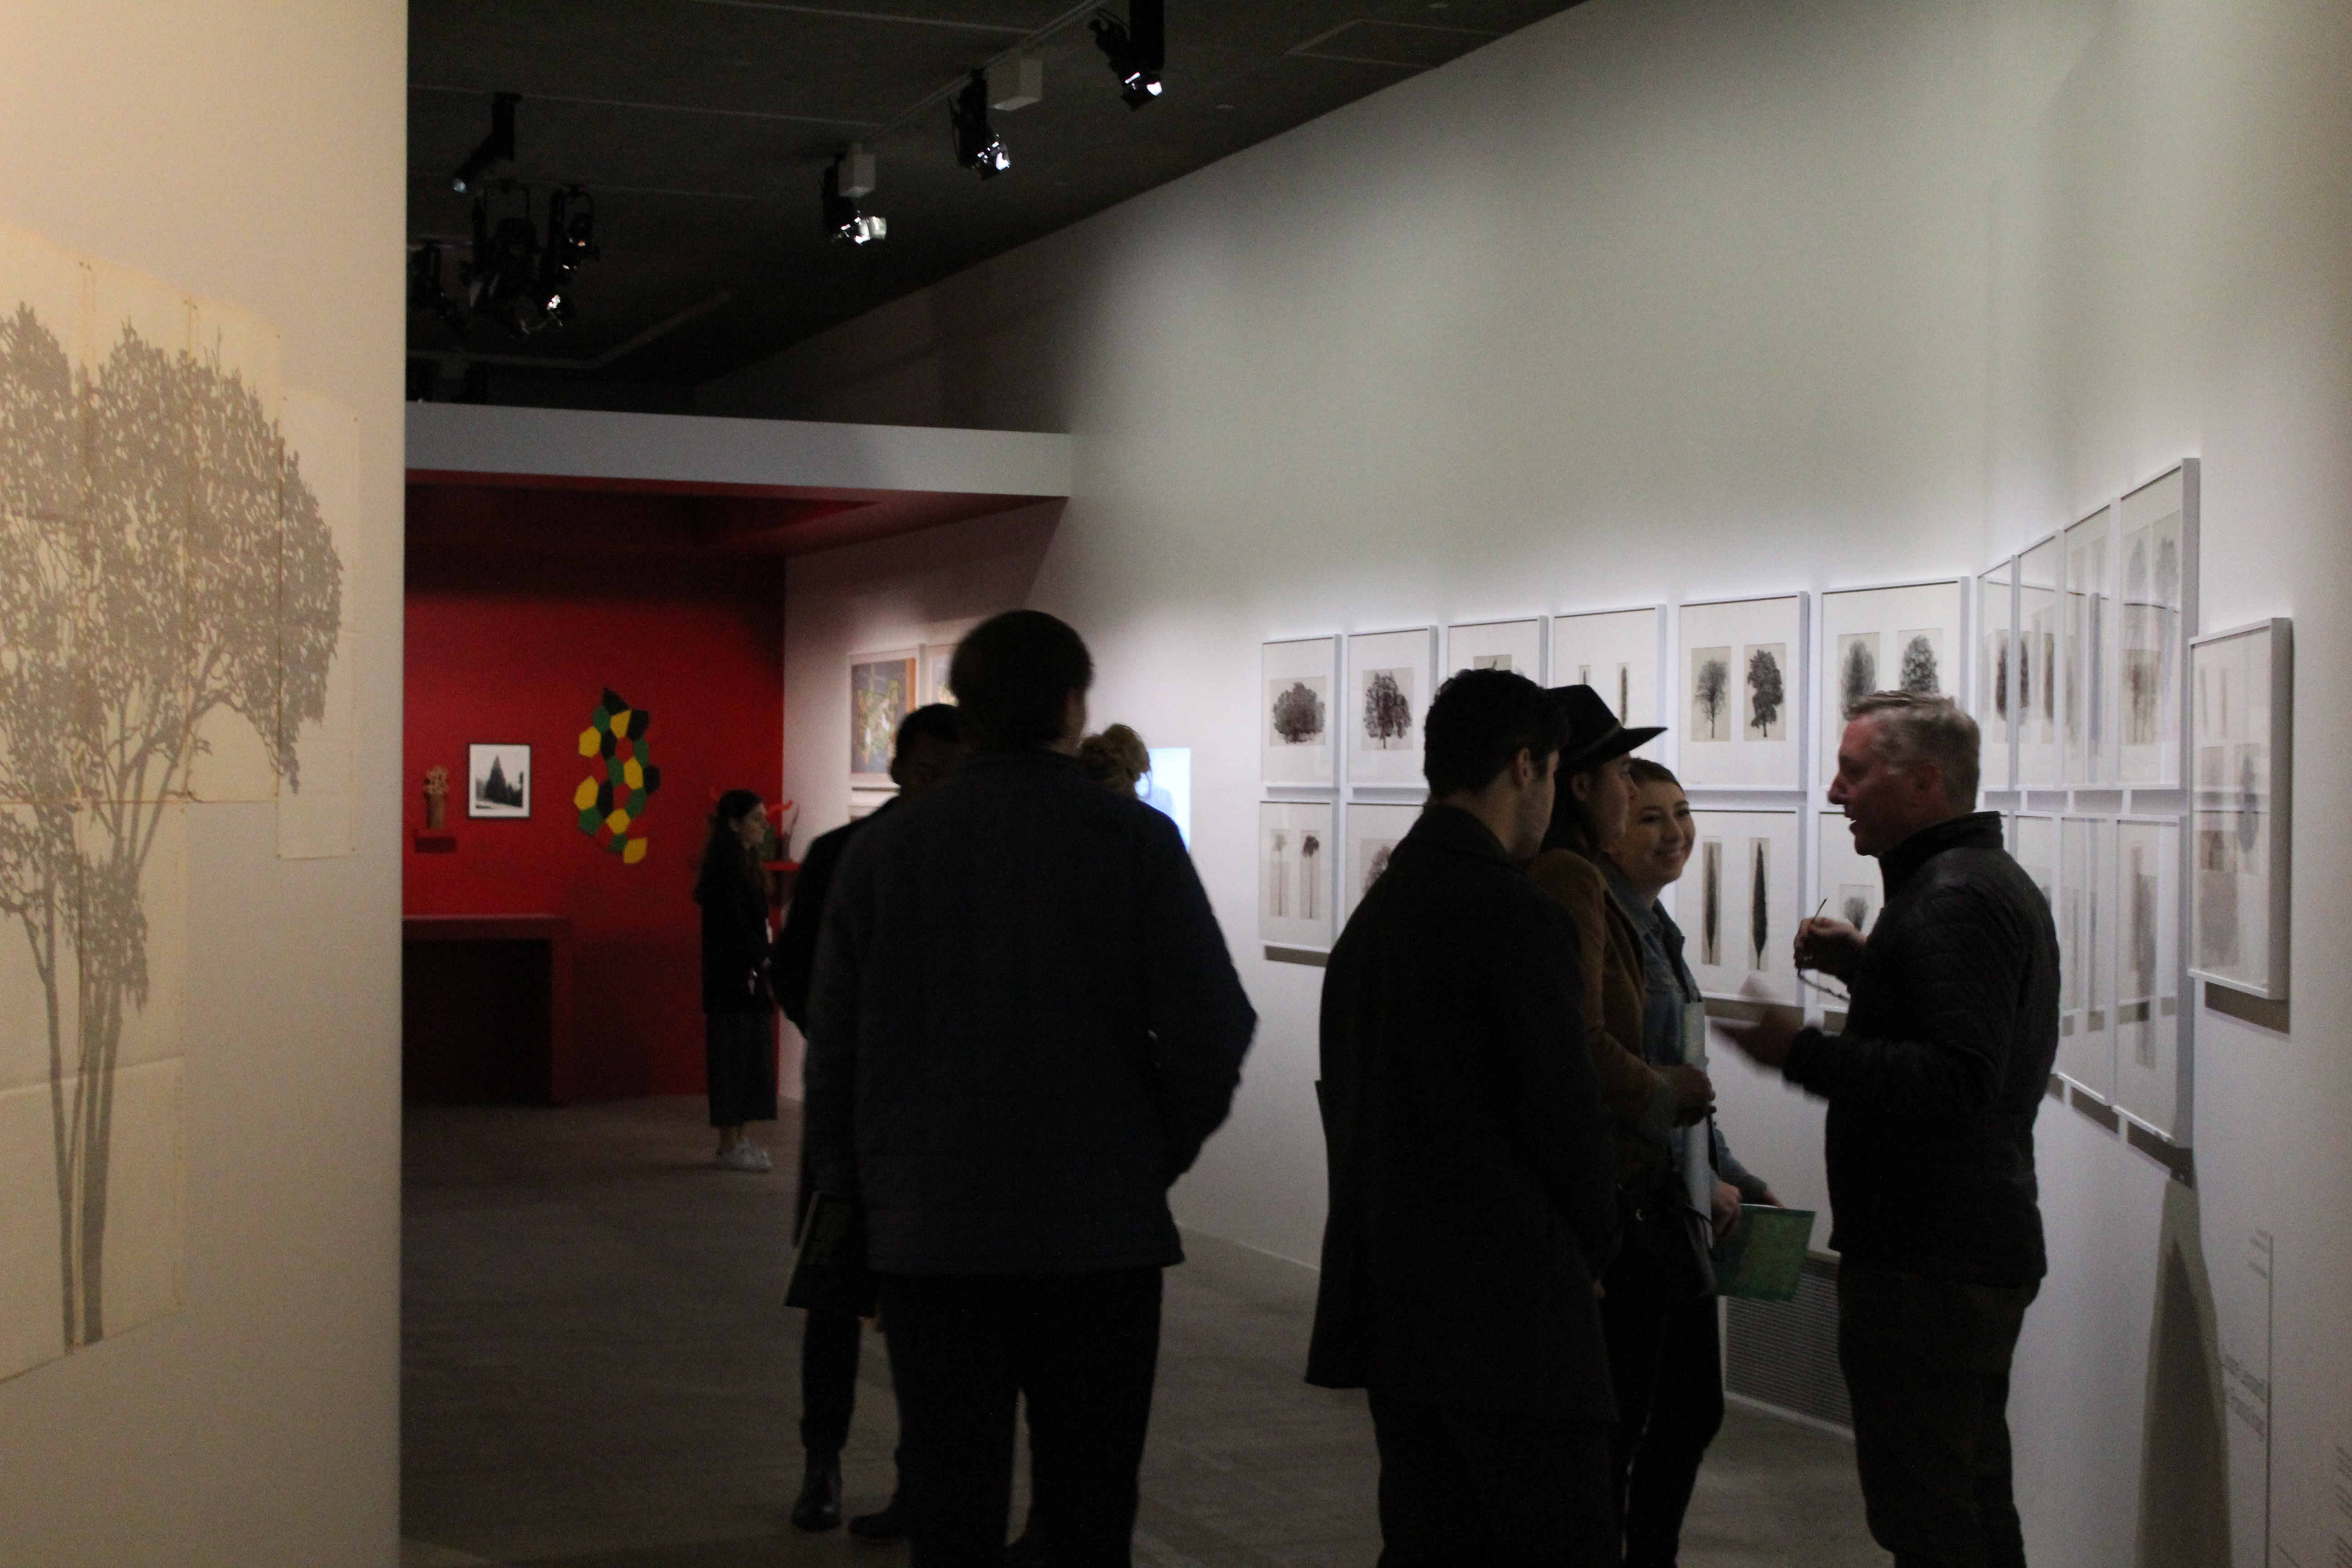 People standing, walking, and talking in a dim lit space with art on the walls.